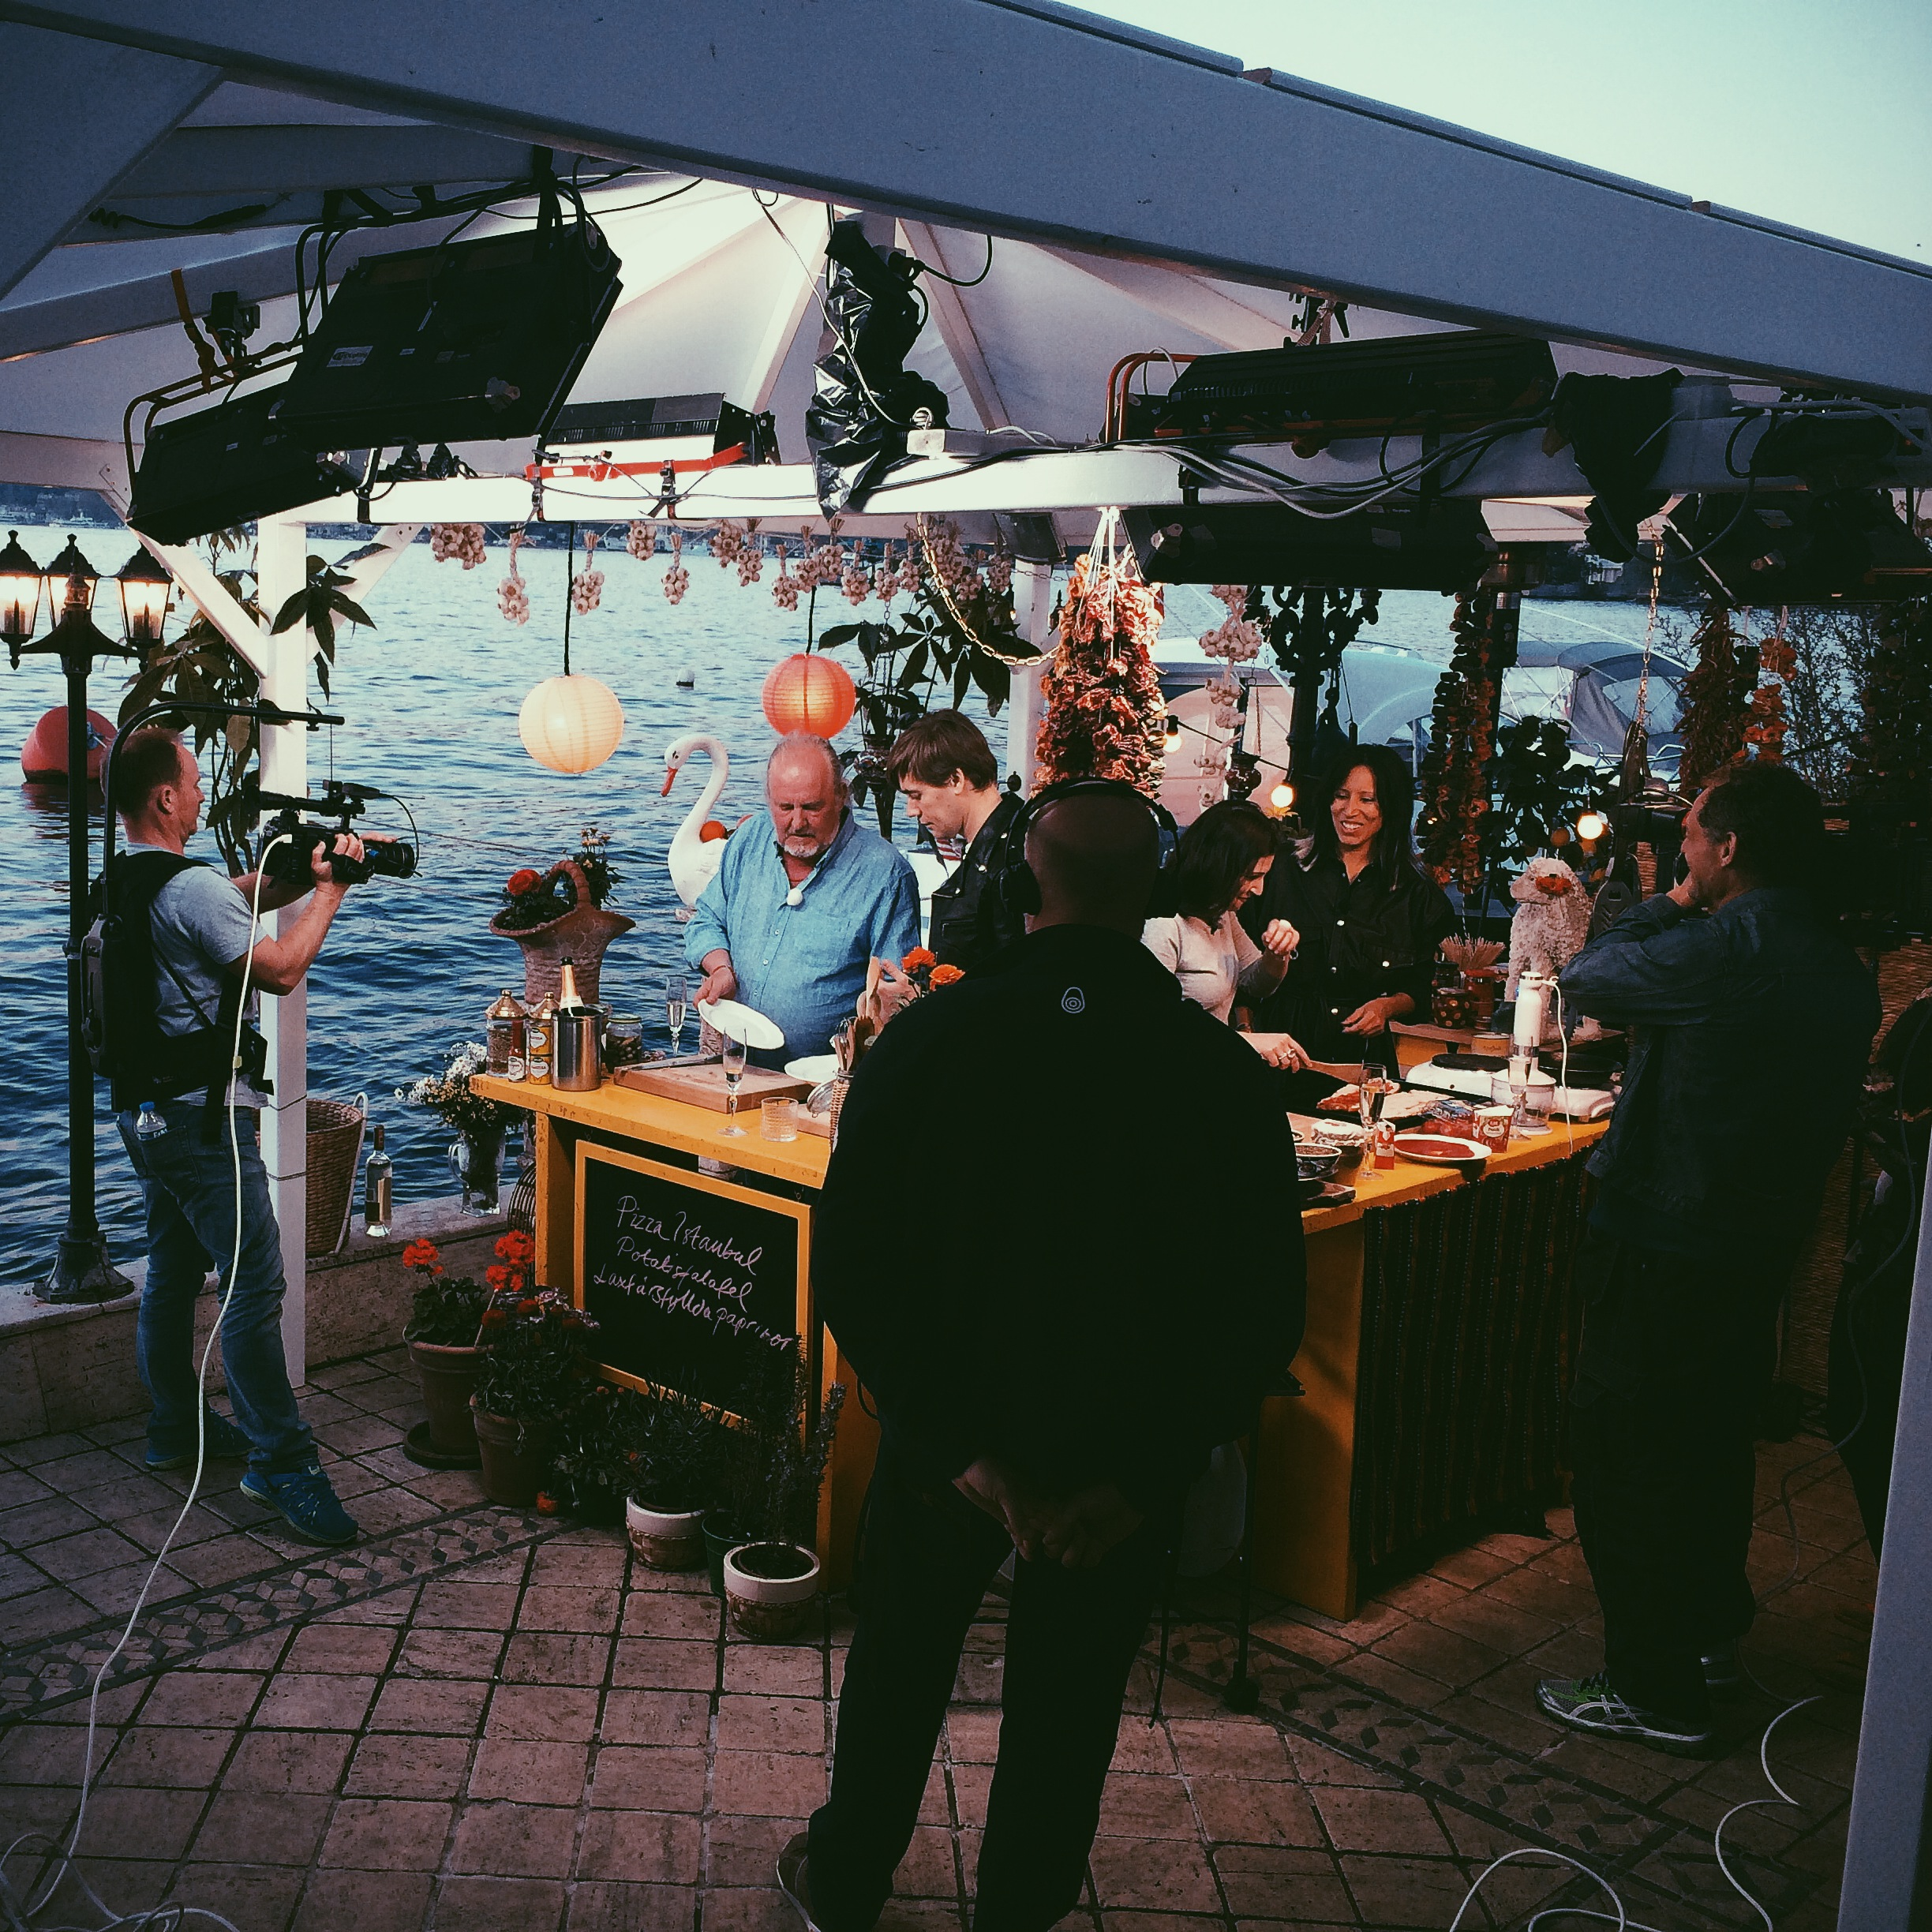 Production in Istanbul